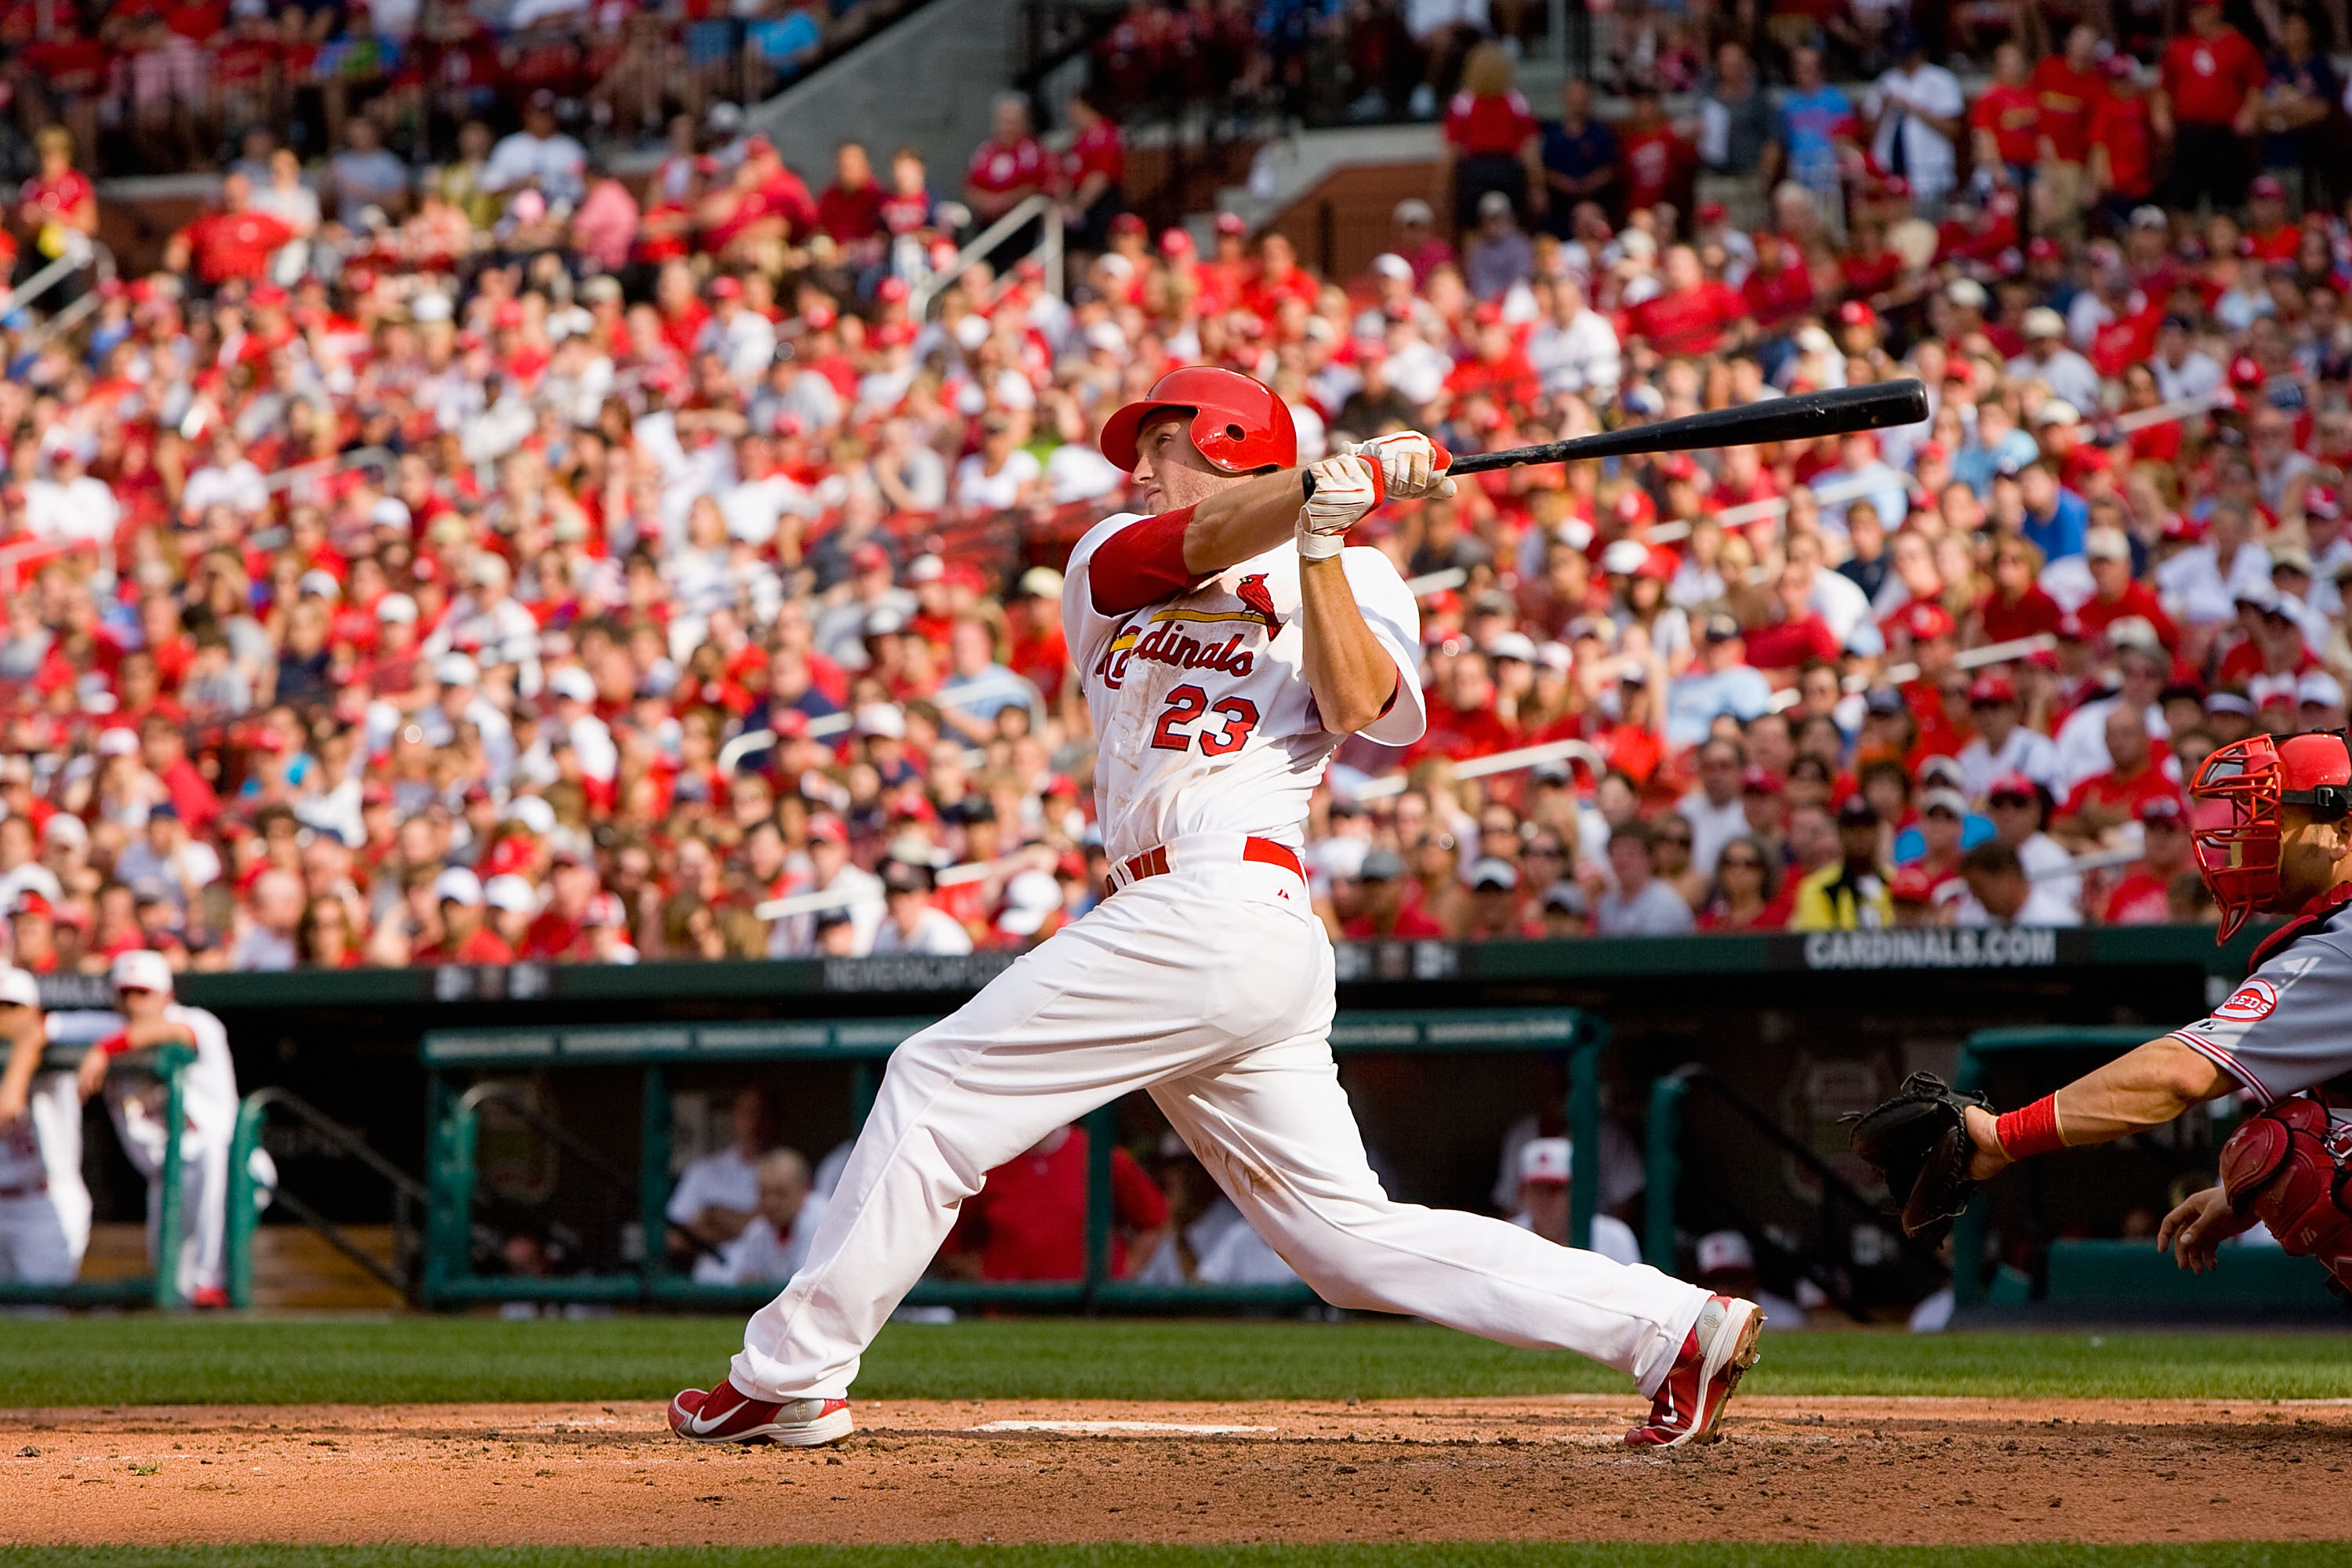 ST. LOUIS - MAY 31: David Freese #23 of the St. Louis Cardinals bats against the Cincinnati Reds at Busch Stadium on May 31, 2010 in St. Louis, Missouri.  (Photo by Dilip Vishwanat/Getty Images)